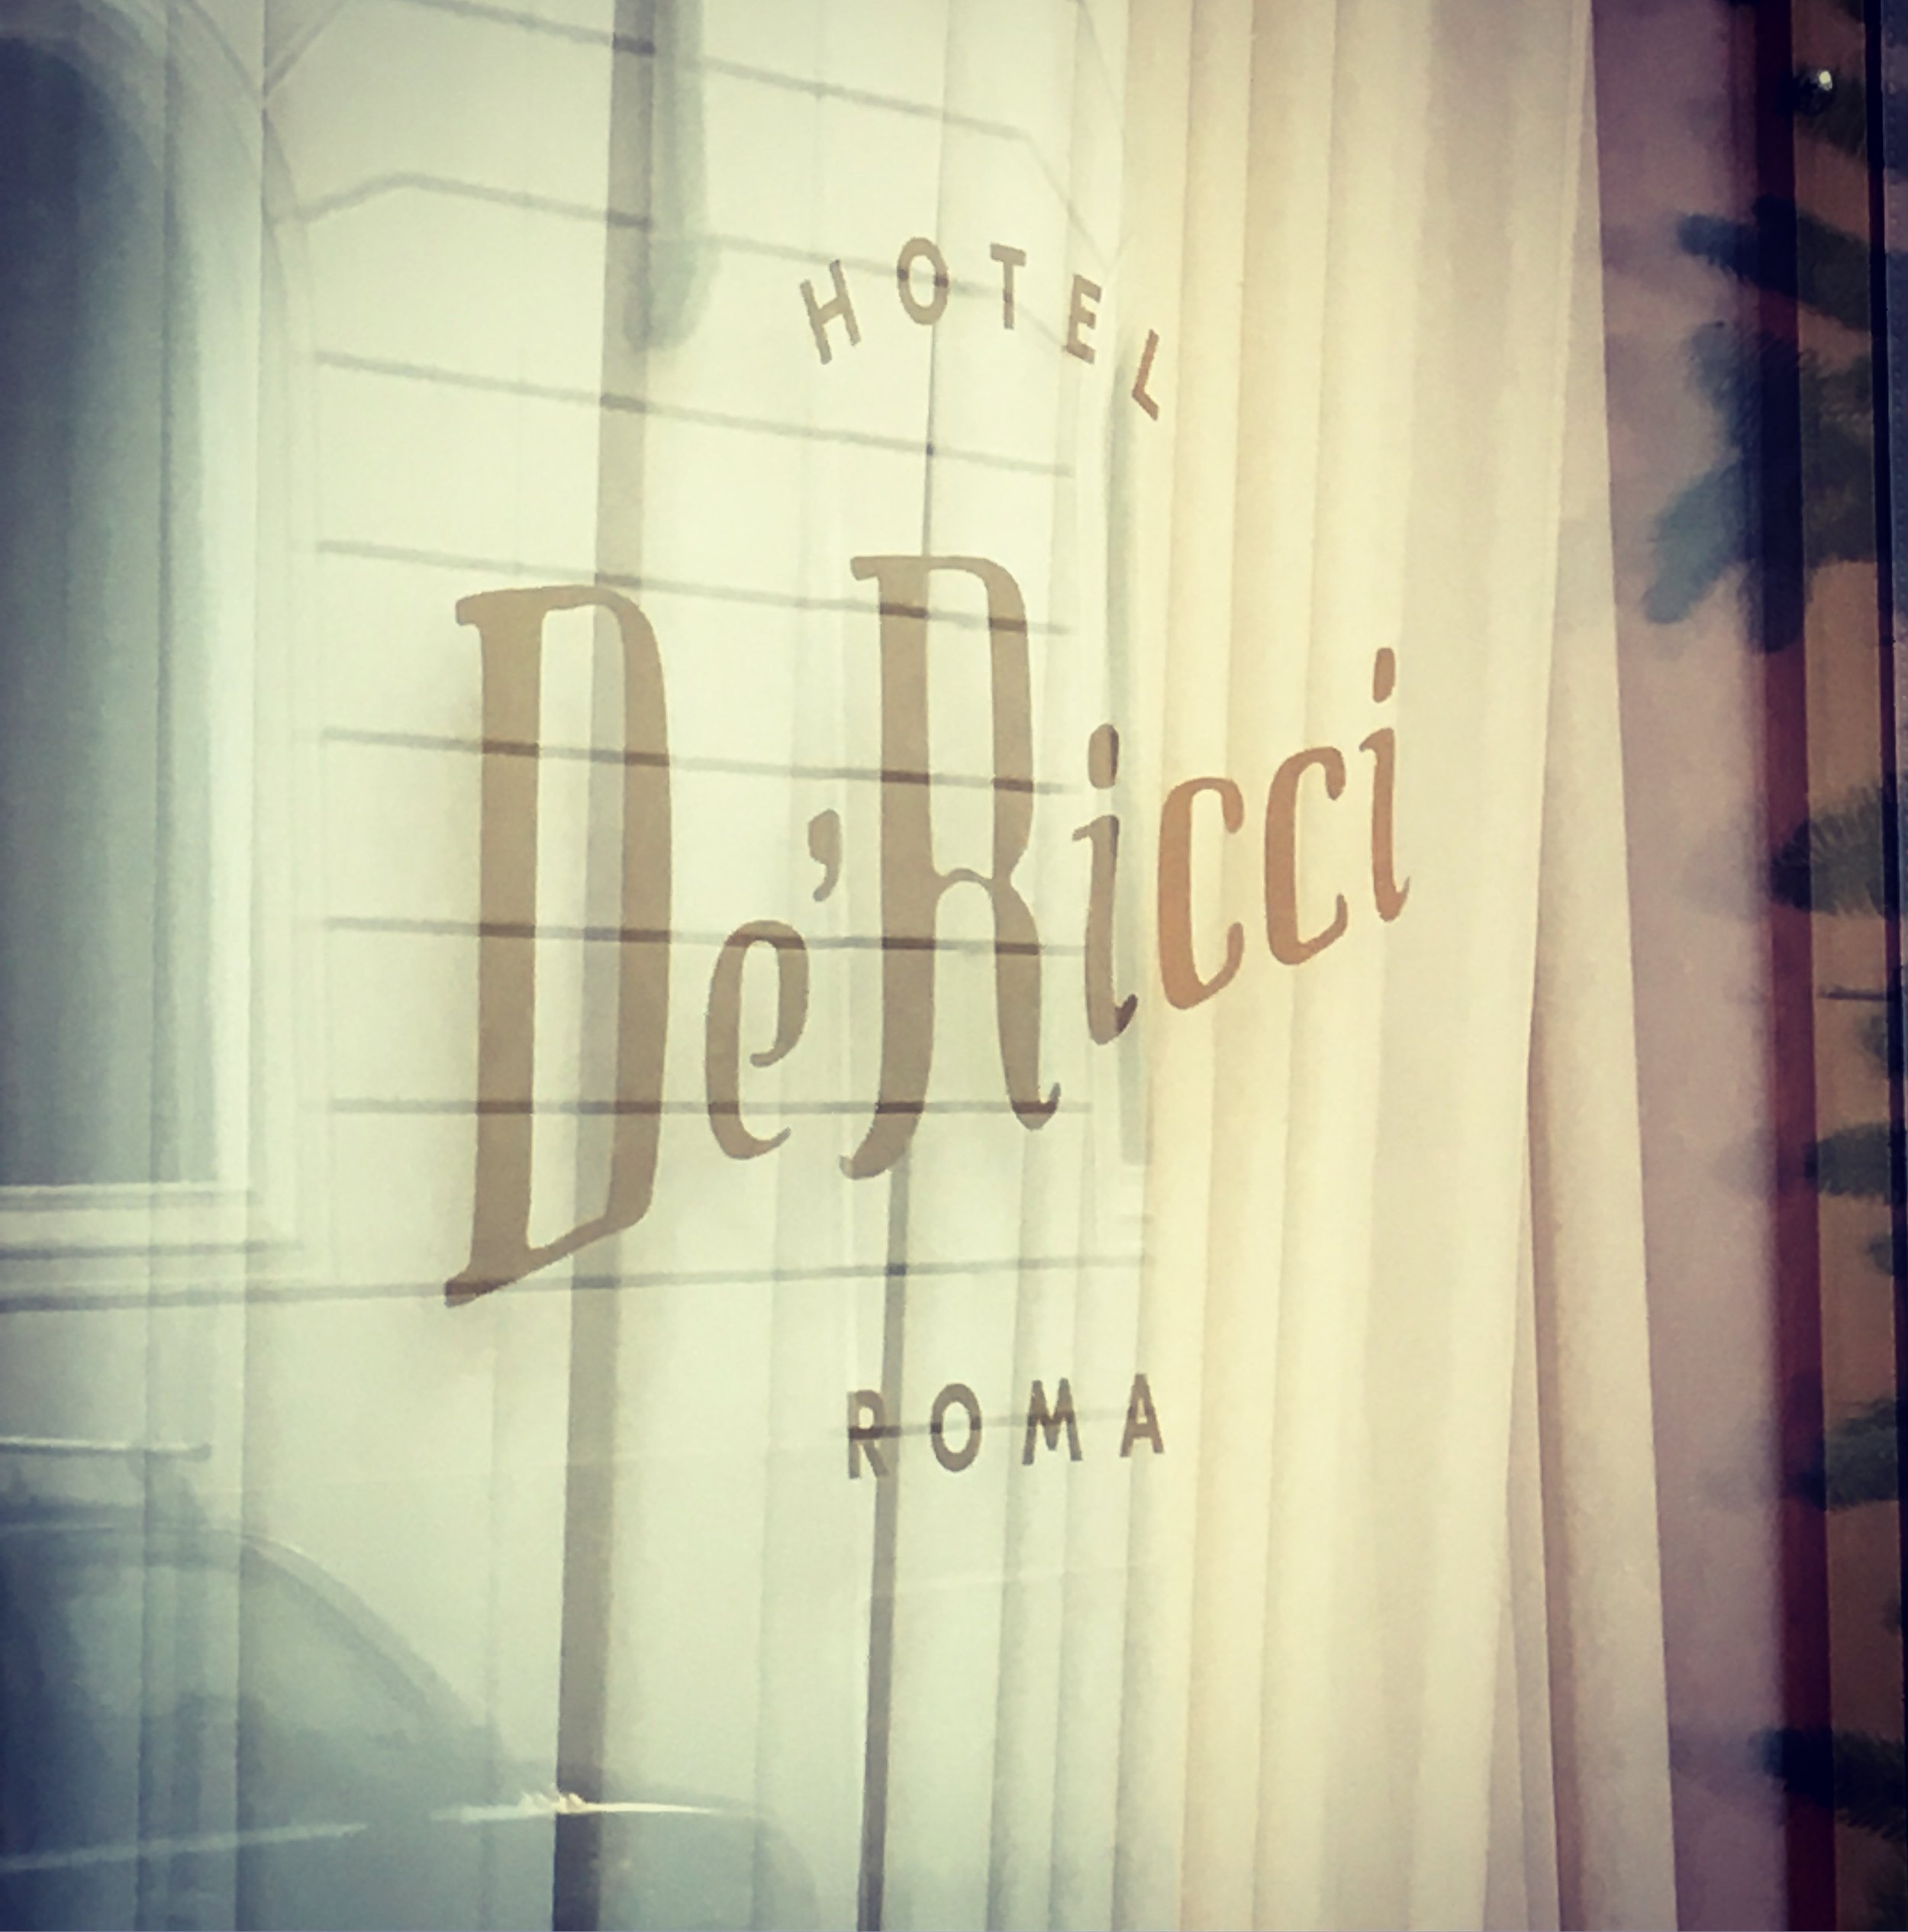 Decor and branding for Hotel De'Ricci, Rome